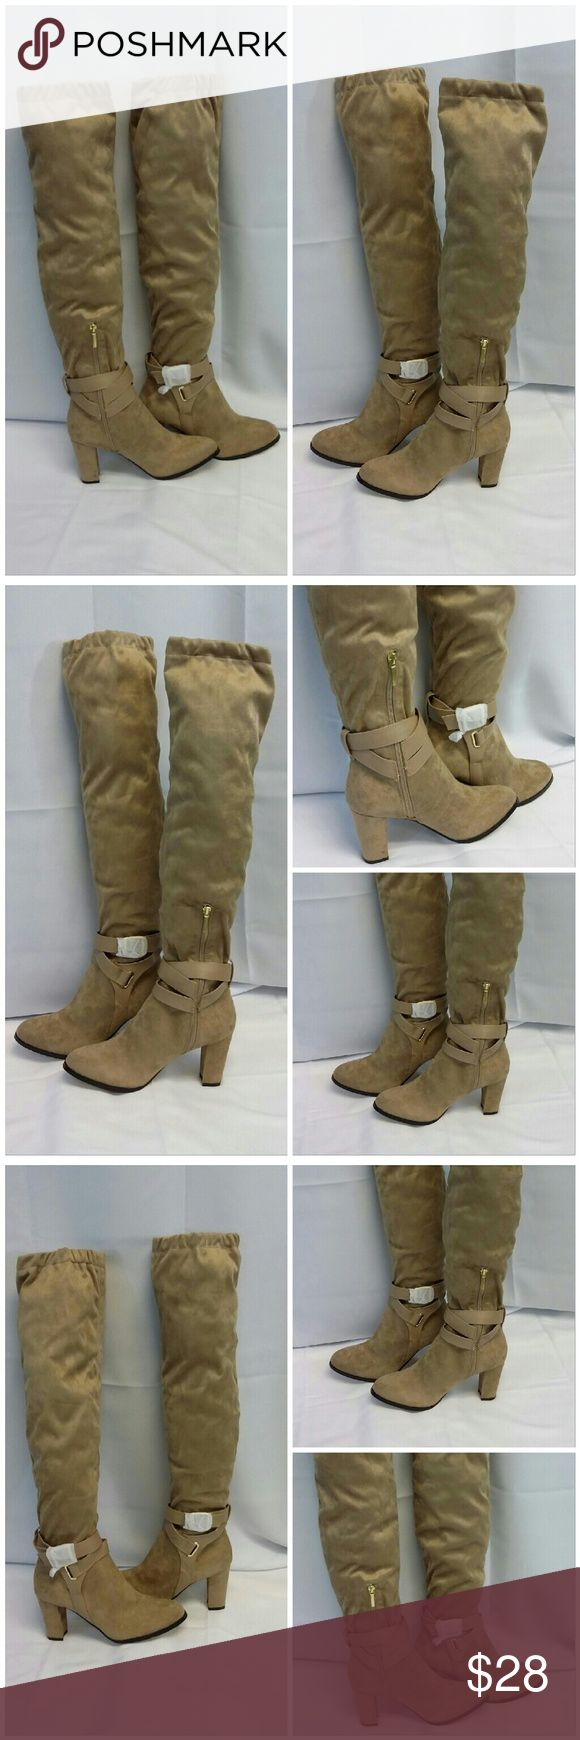 """EVE MENDES, NEW WITH TAG IN BOX Faux Suede size 7 EVE MENDES, NEW WITH TAG IN BOX, Taupe, very soft Velvet/Suede like man-made material,  3"""" matching covered Heel, Boots NWT in Box, size 7, 3 hole adjustable ankle wrap with gold tone buckle, belt loop back center above heel, 9"""" zipper with 1"""" gold tone zipper tab, 19 1/2"""" from heel to top of boot on calf, 7 1/2"""" wide calf laying flat or 15"""" circumference,  style name Corso.  ADD TO A BUNDLE! 30% Automatically Discounted on all Bundles! Eve…"""